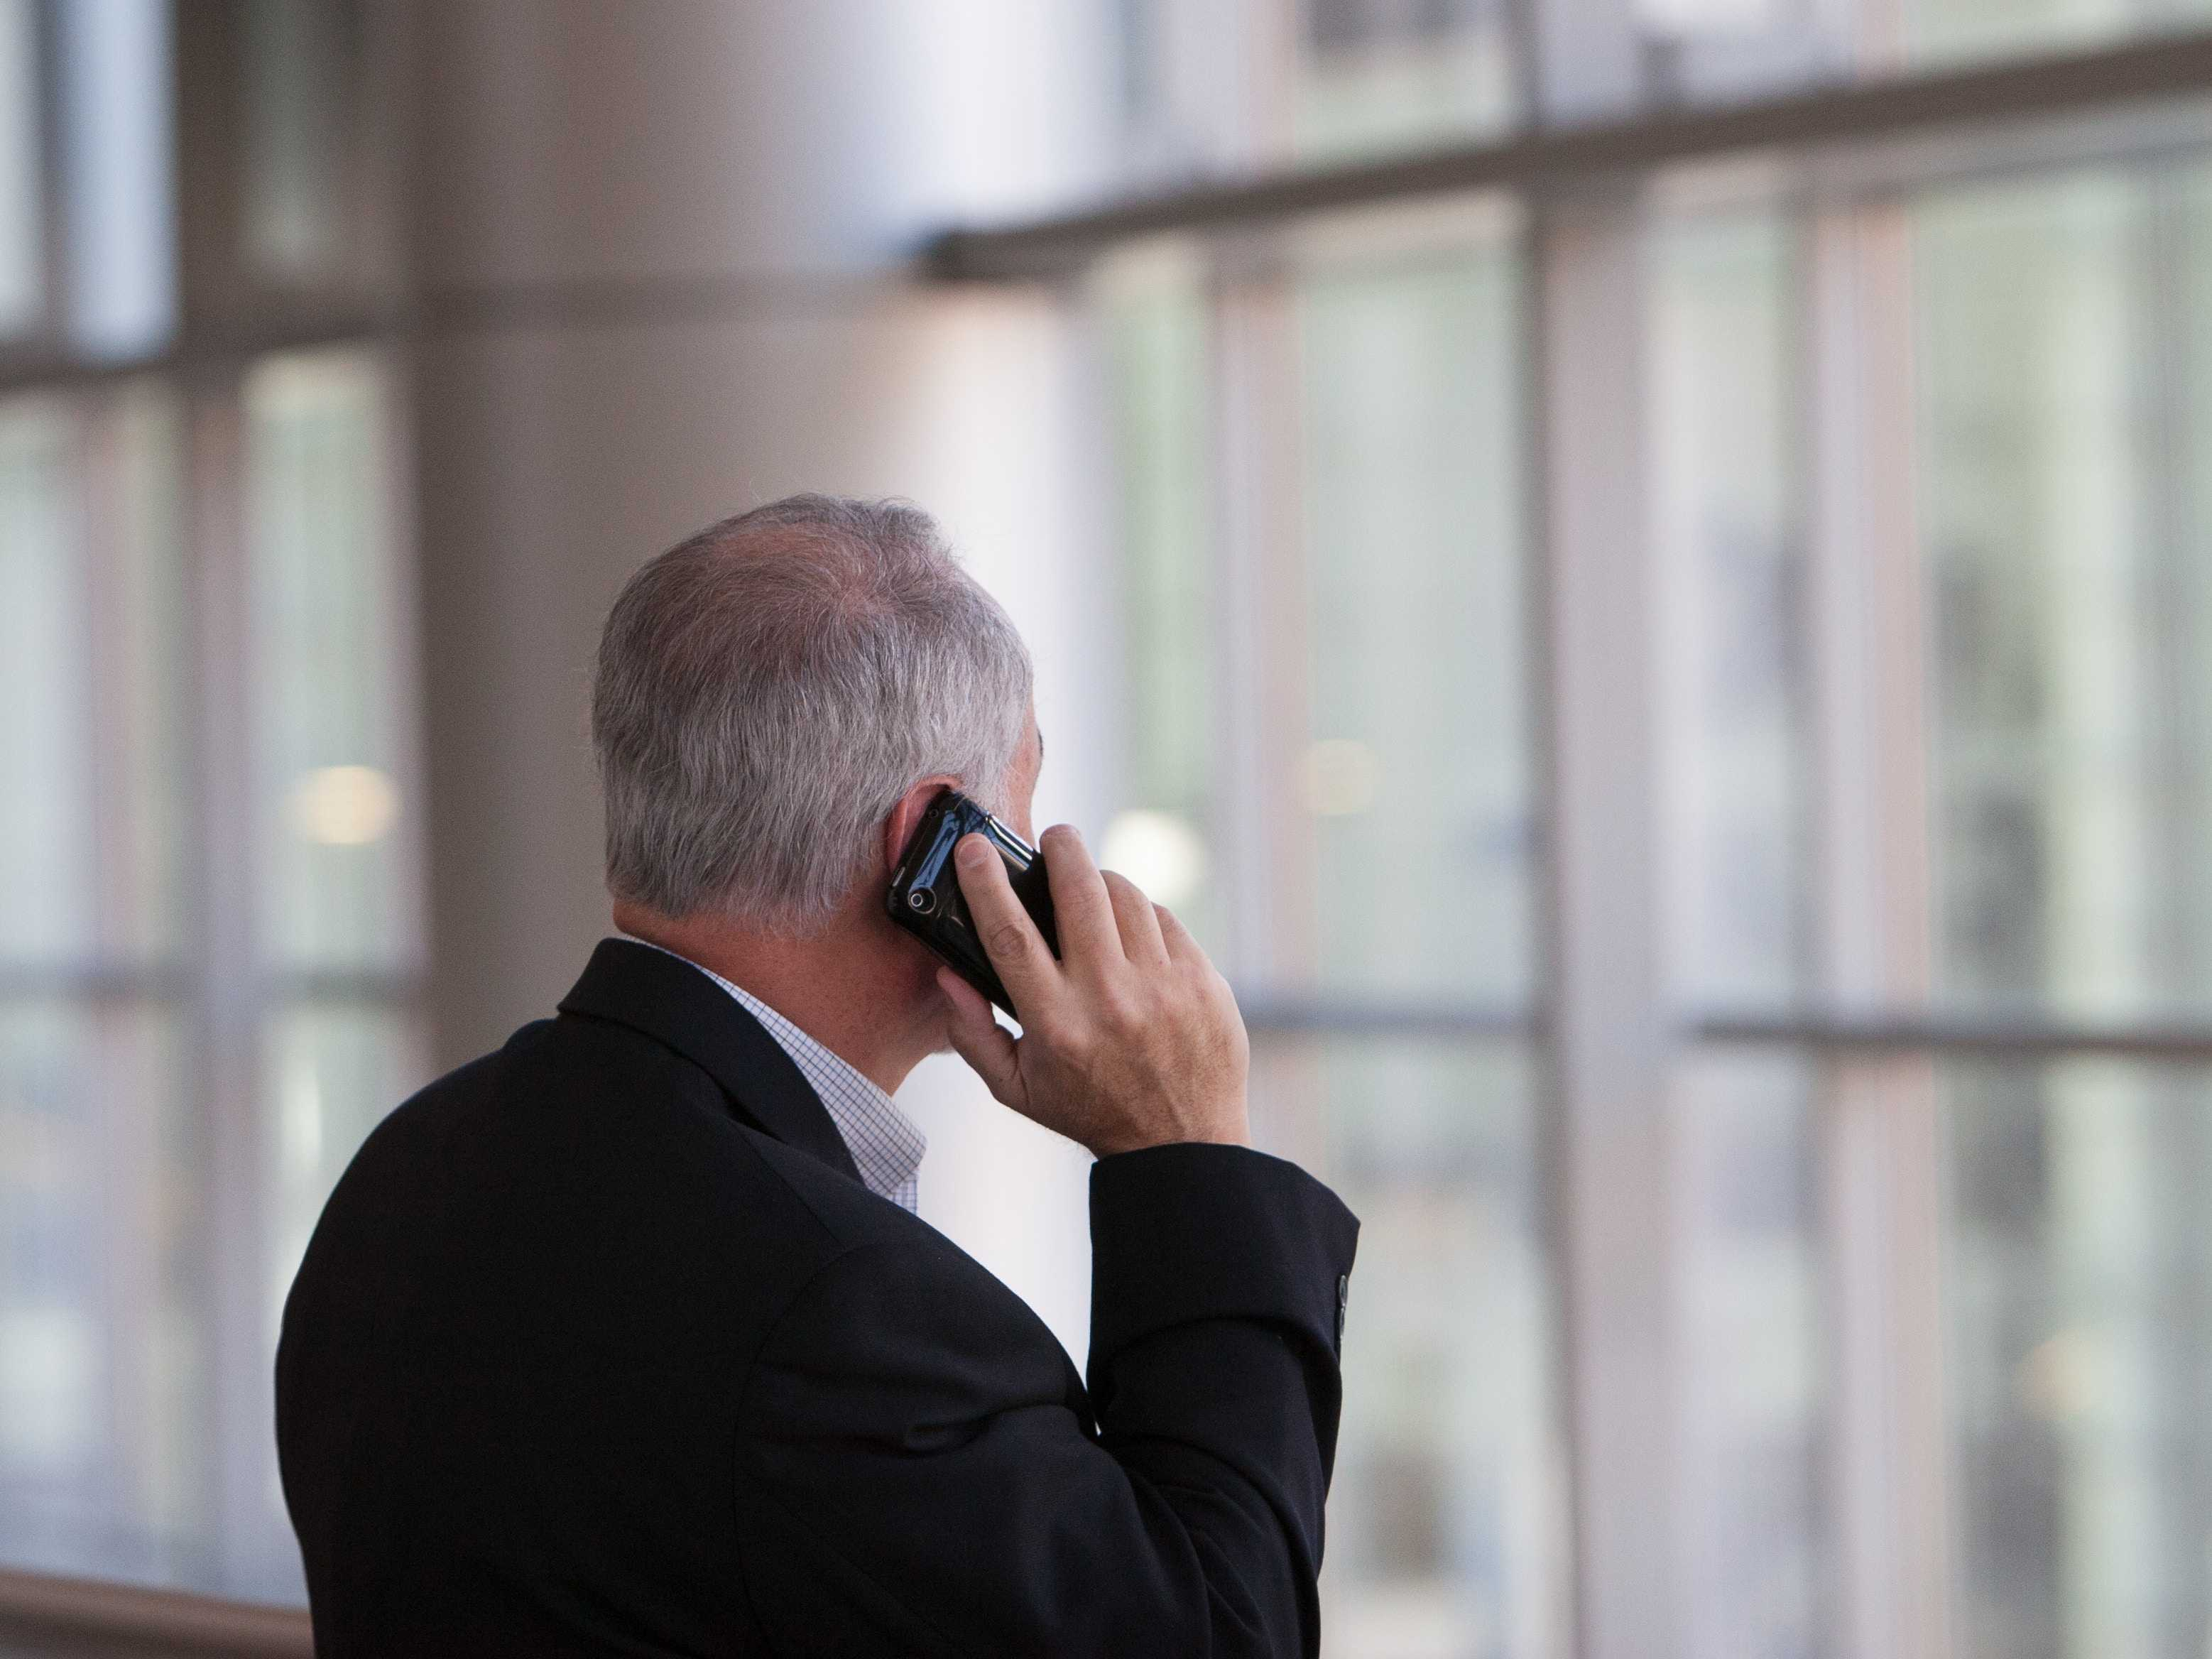 8 Steps for Better Sound Quality in Conference Calls